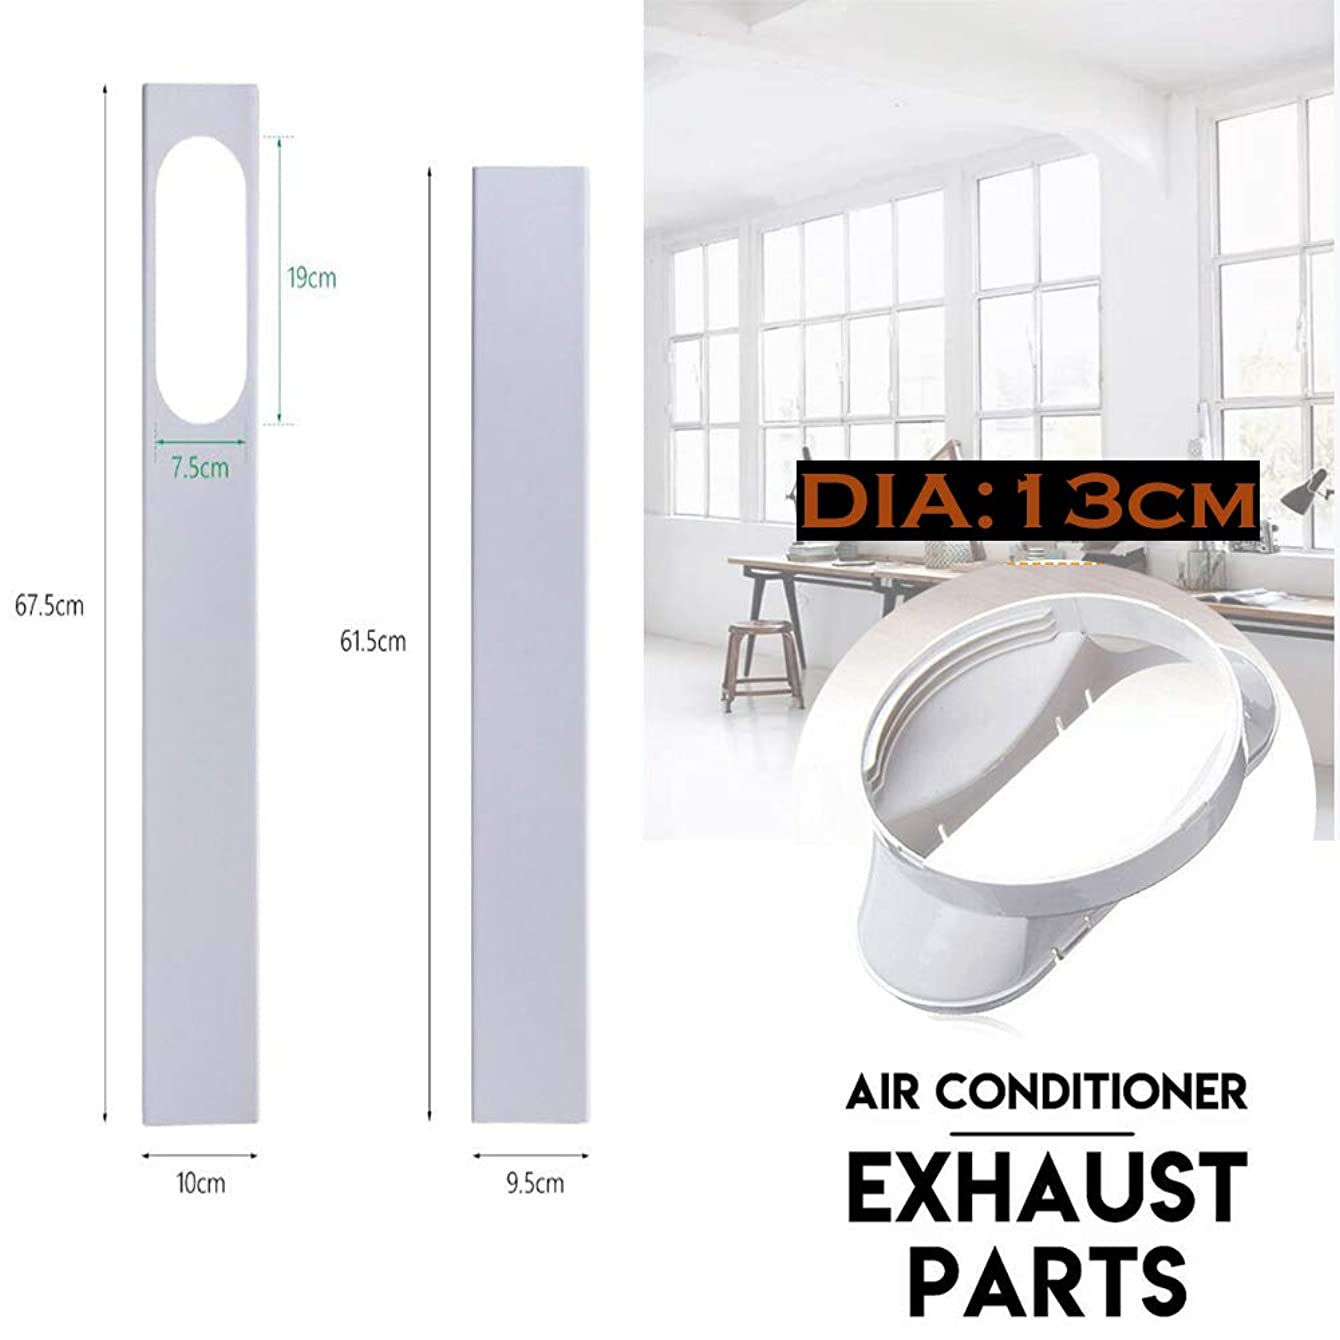 2Pcs / 3Pcs Window Slide Kit Plate Exhaust Hose Adapter for Air Conditioner/DIAMETER 5.12 INCHES CM EXHAUST PIPE INTERFACE 1 / ADJUSTABLE LENGTH 120 CM / 180 CM